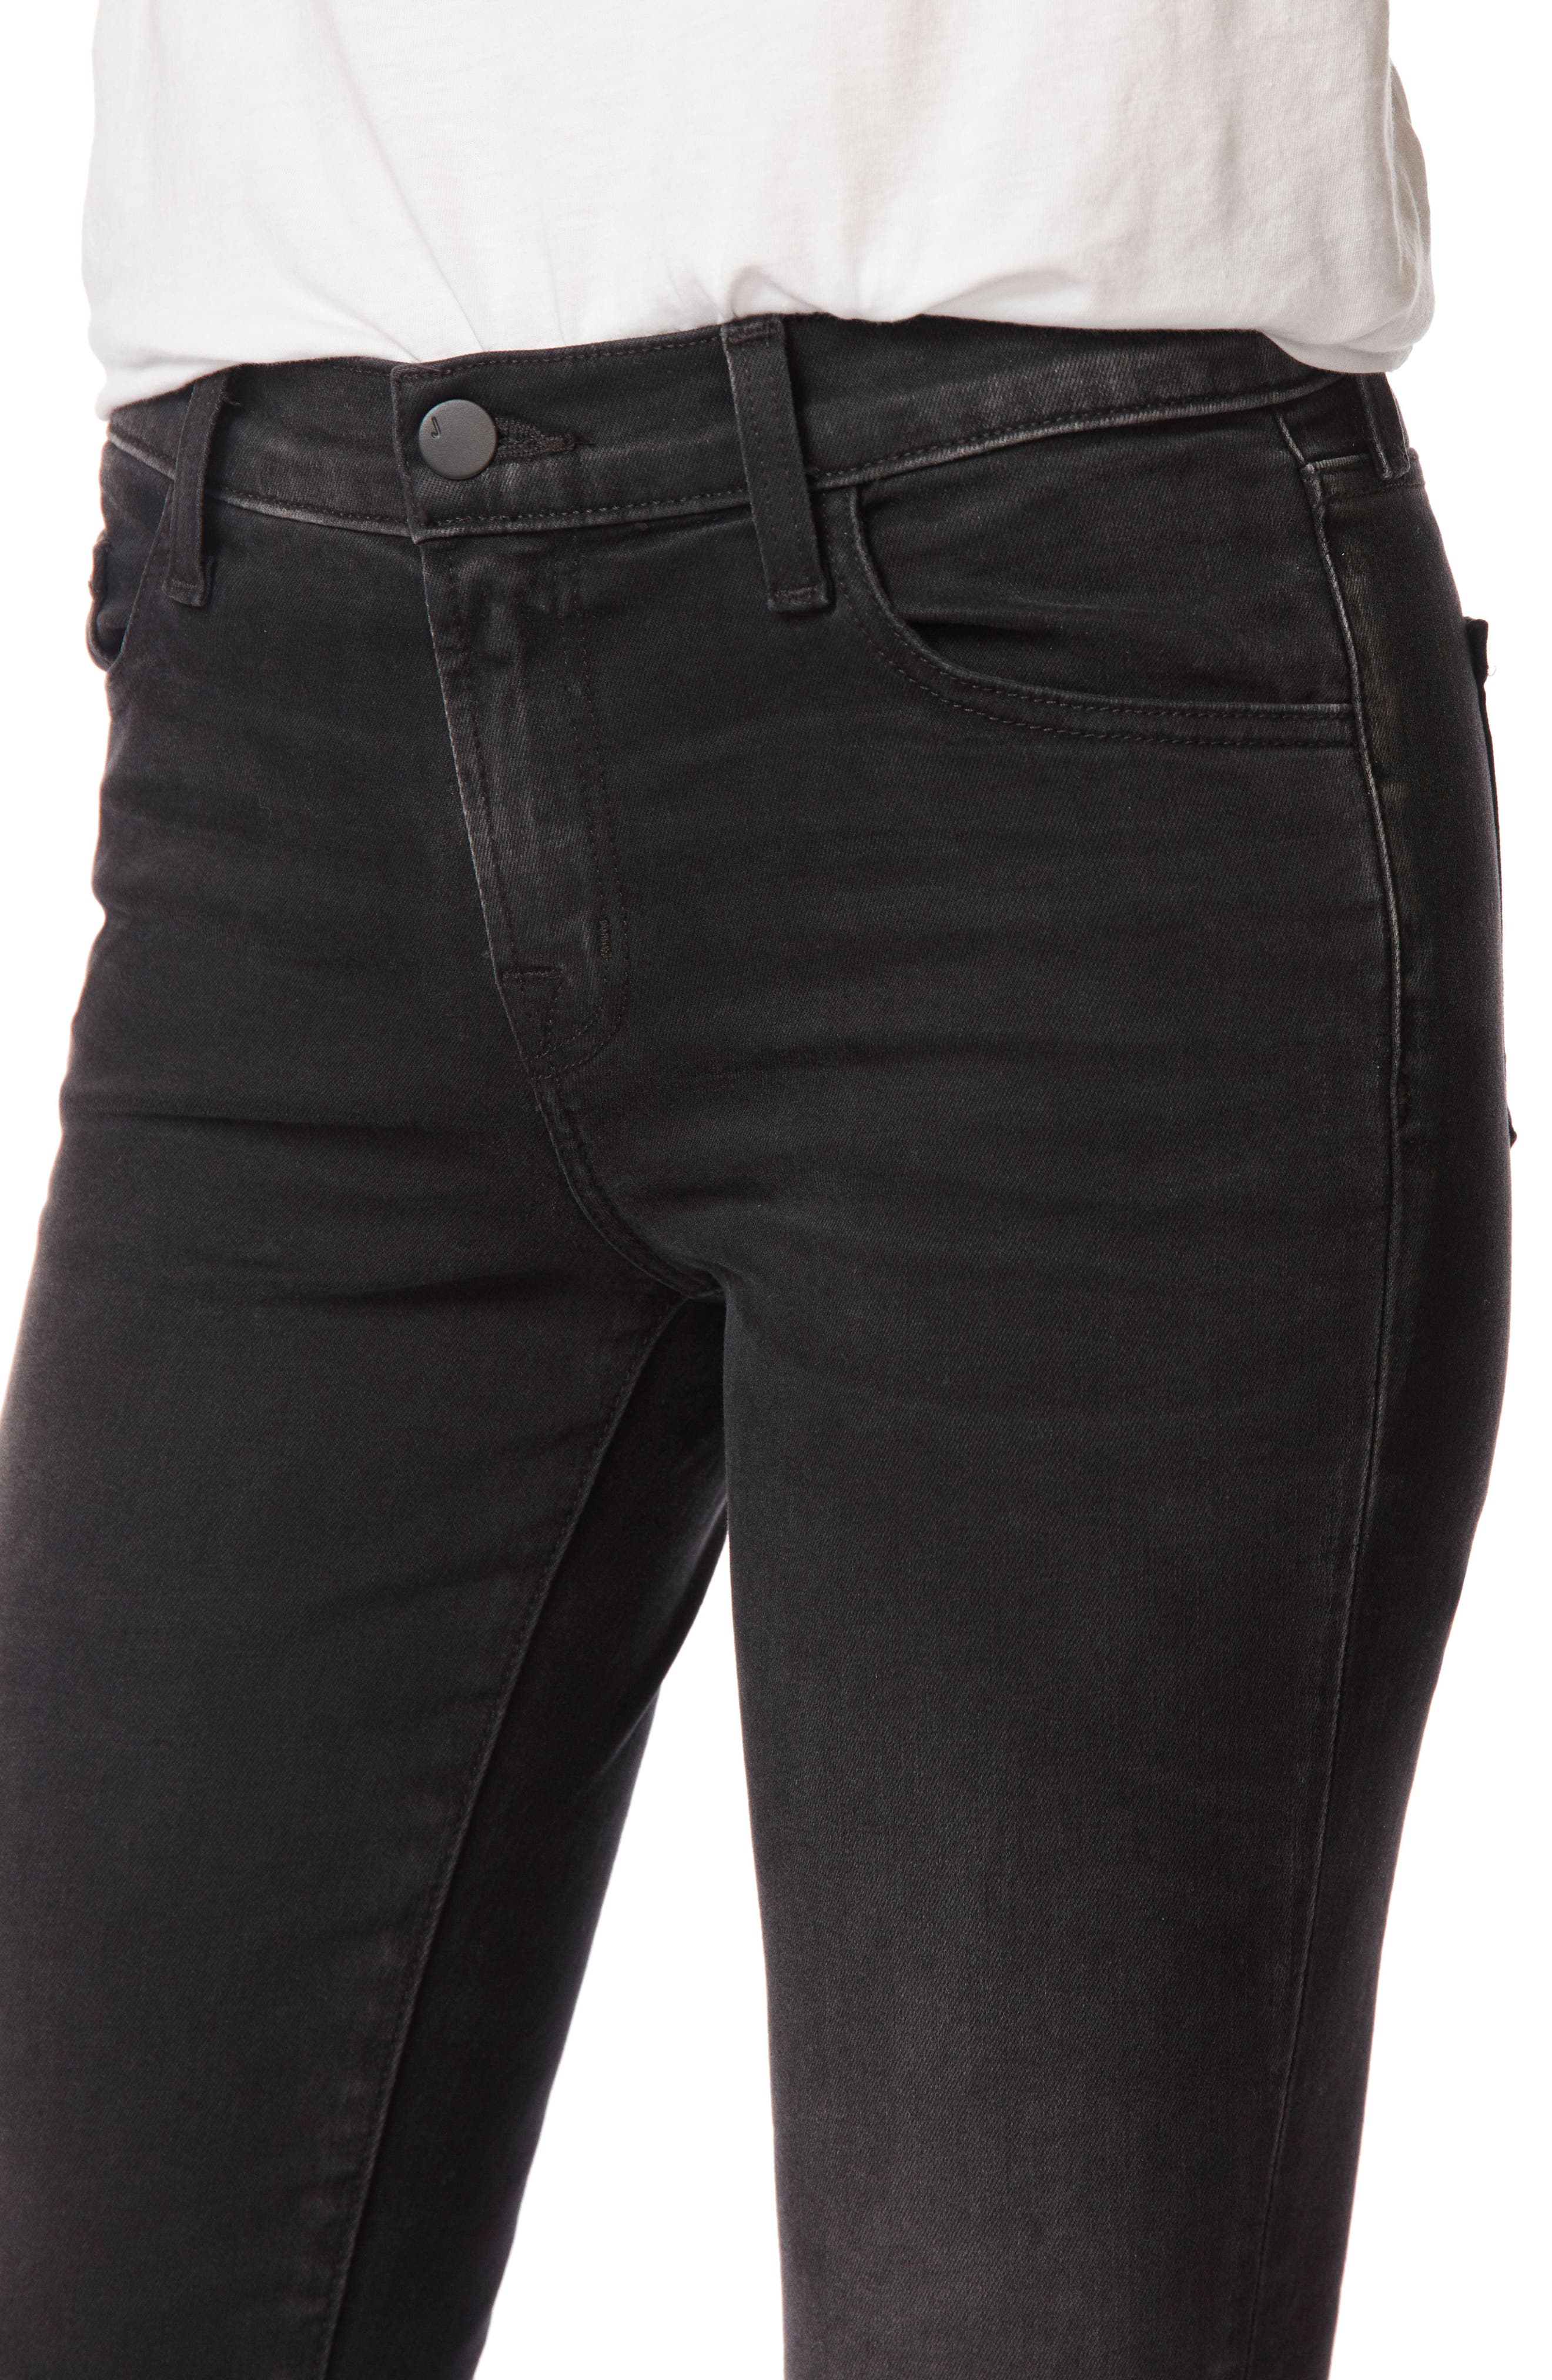 Capri Skinny Jeans,                             Alternate thumbnail 4, color,                             001